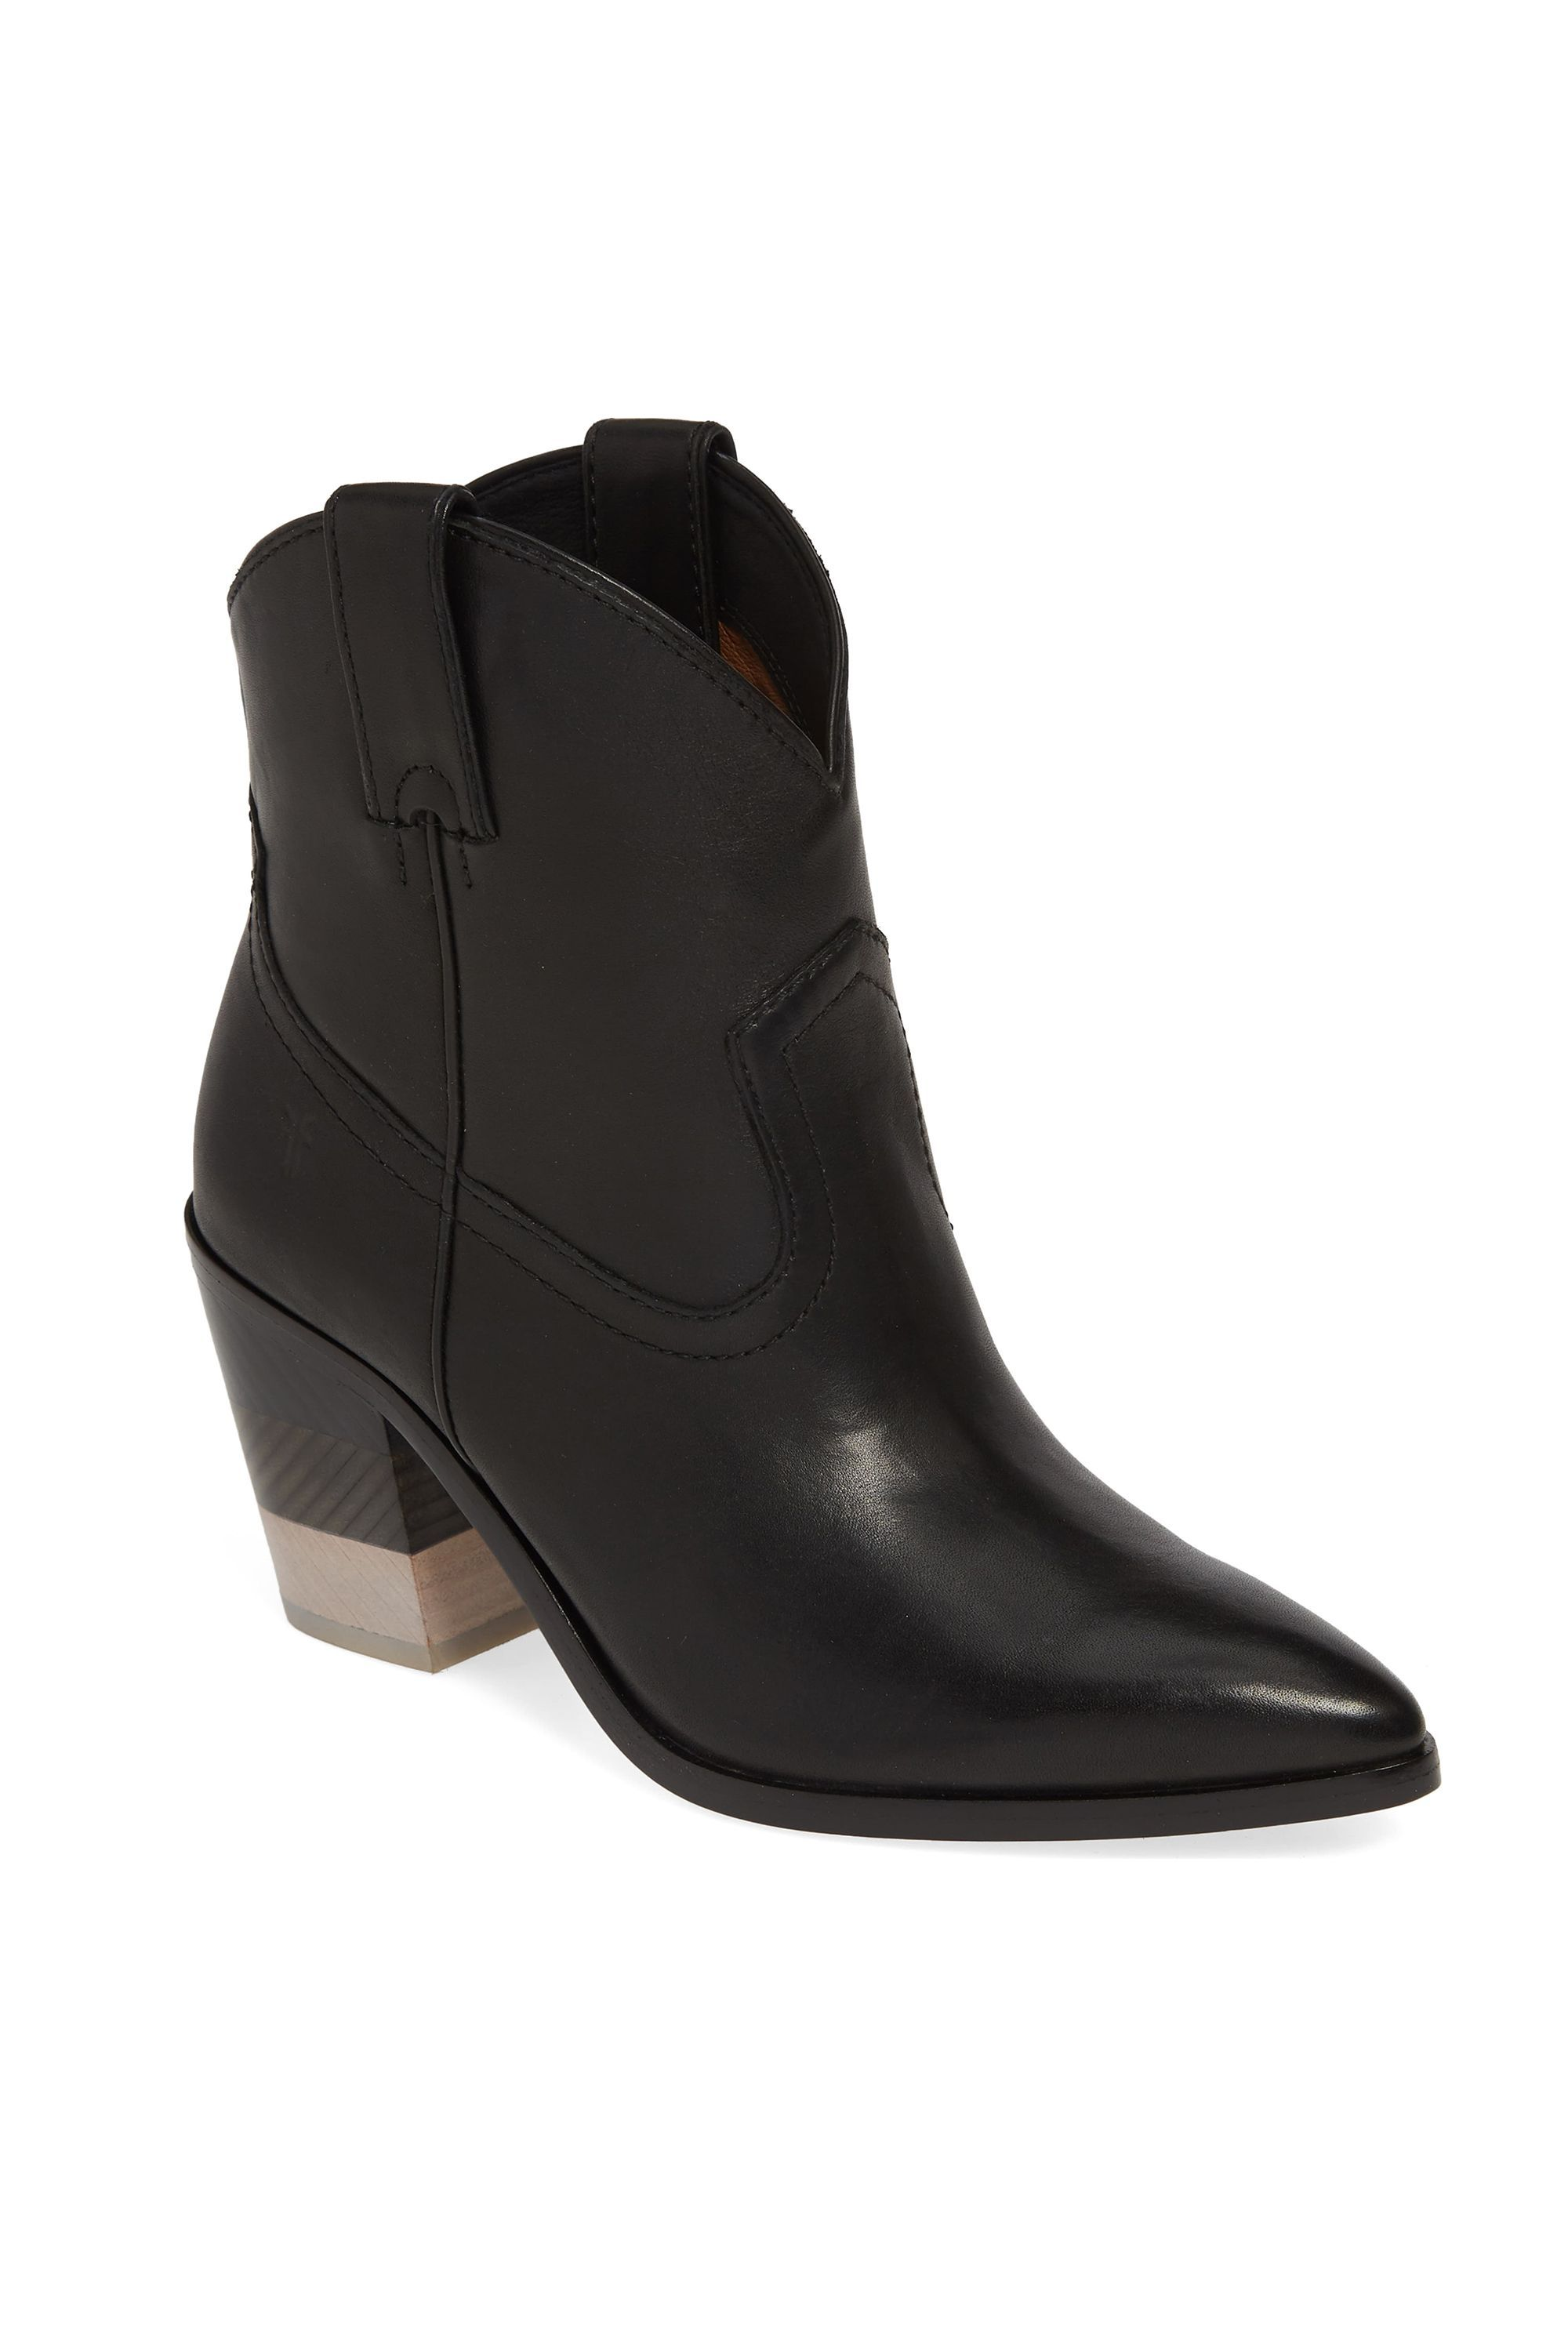 Faye Chevron Bootie Frye, $208.77 nordstrom.com SHOP NOW